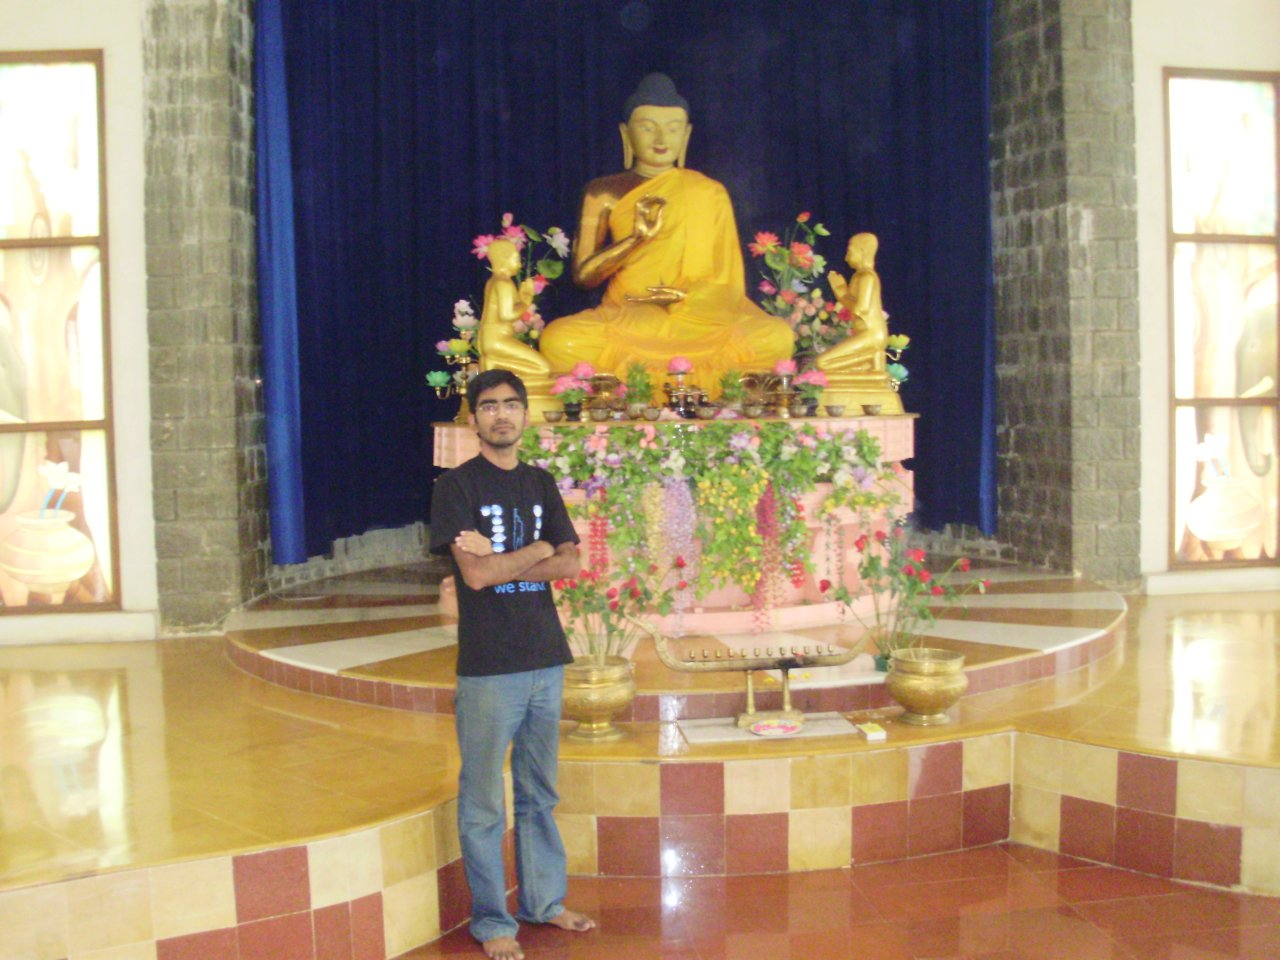 Me inside the temple